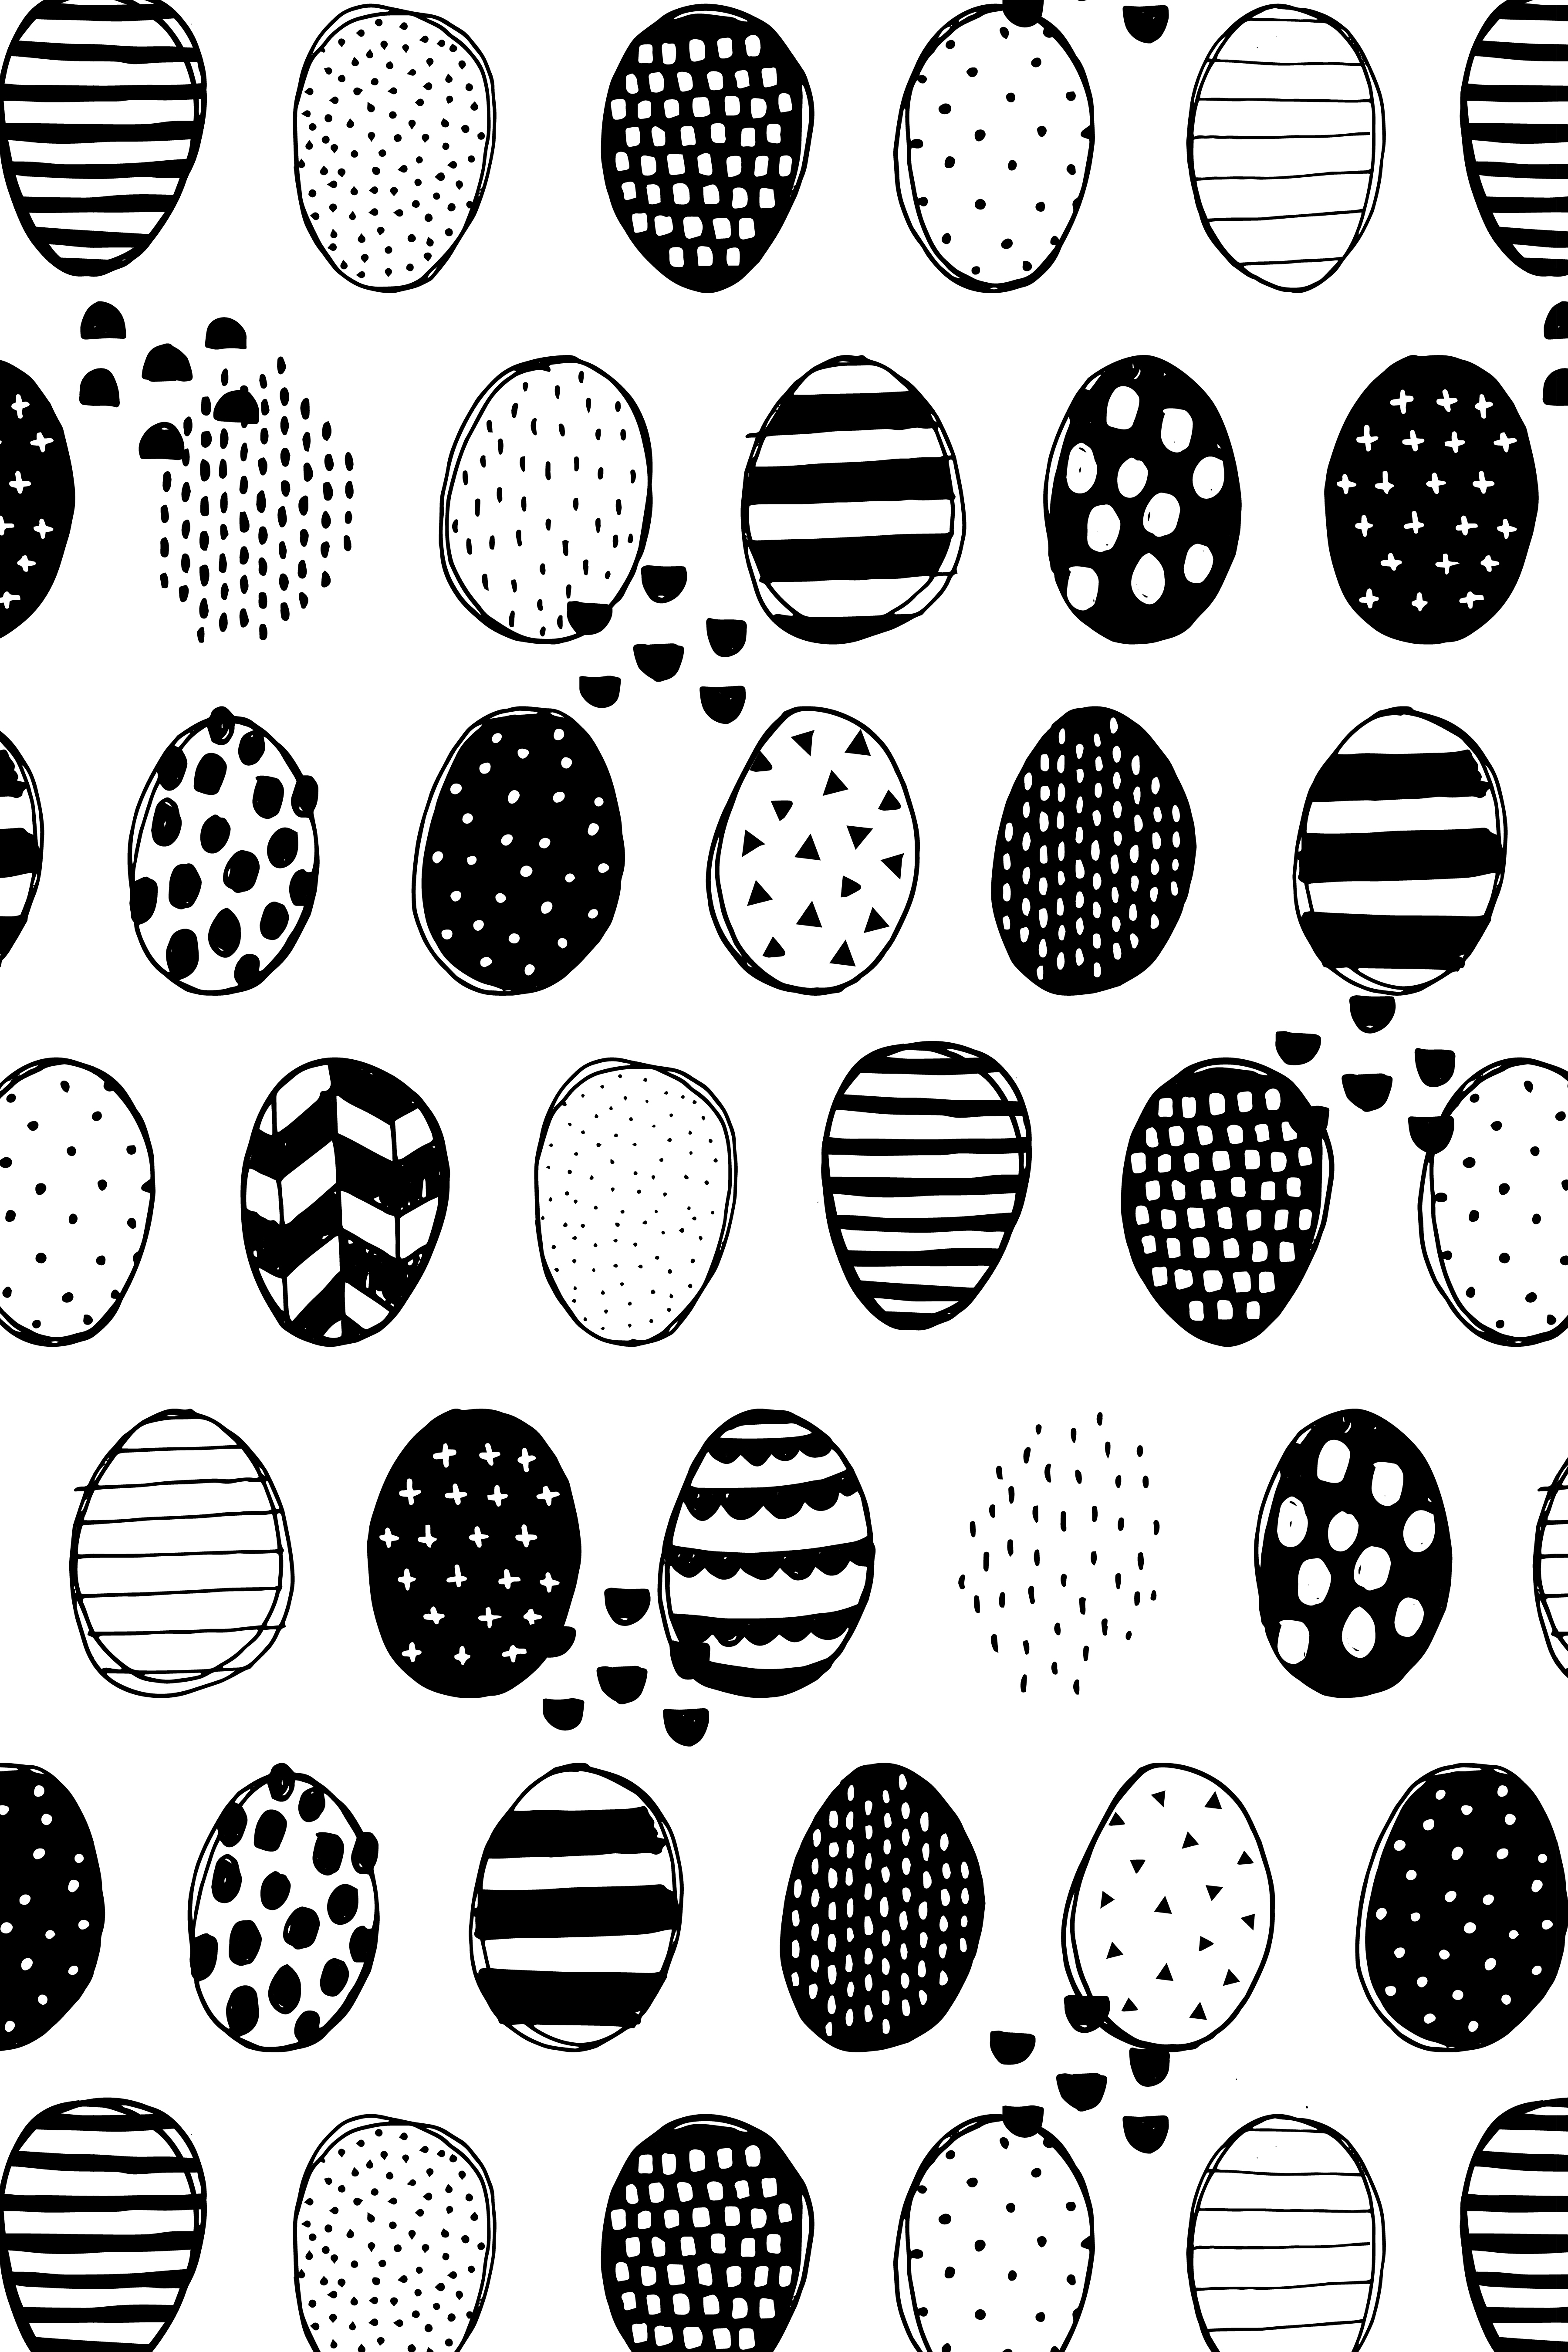 Free Downloads – Easter Wrapping Paper - Babasouk - Free Printable Easter Wrapping Paper